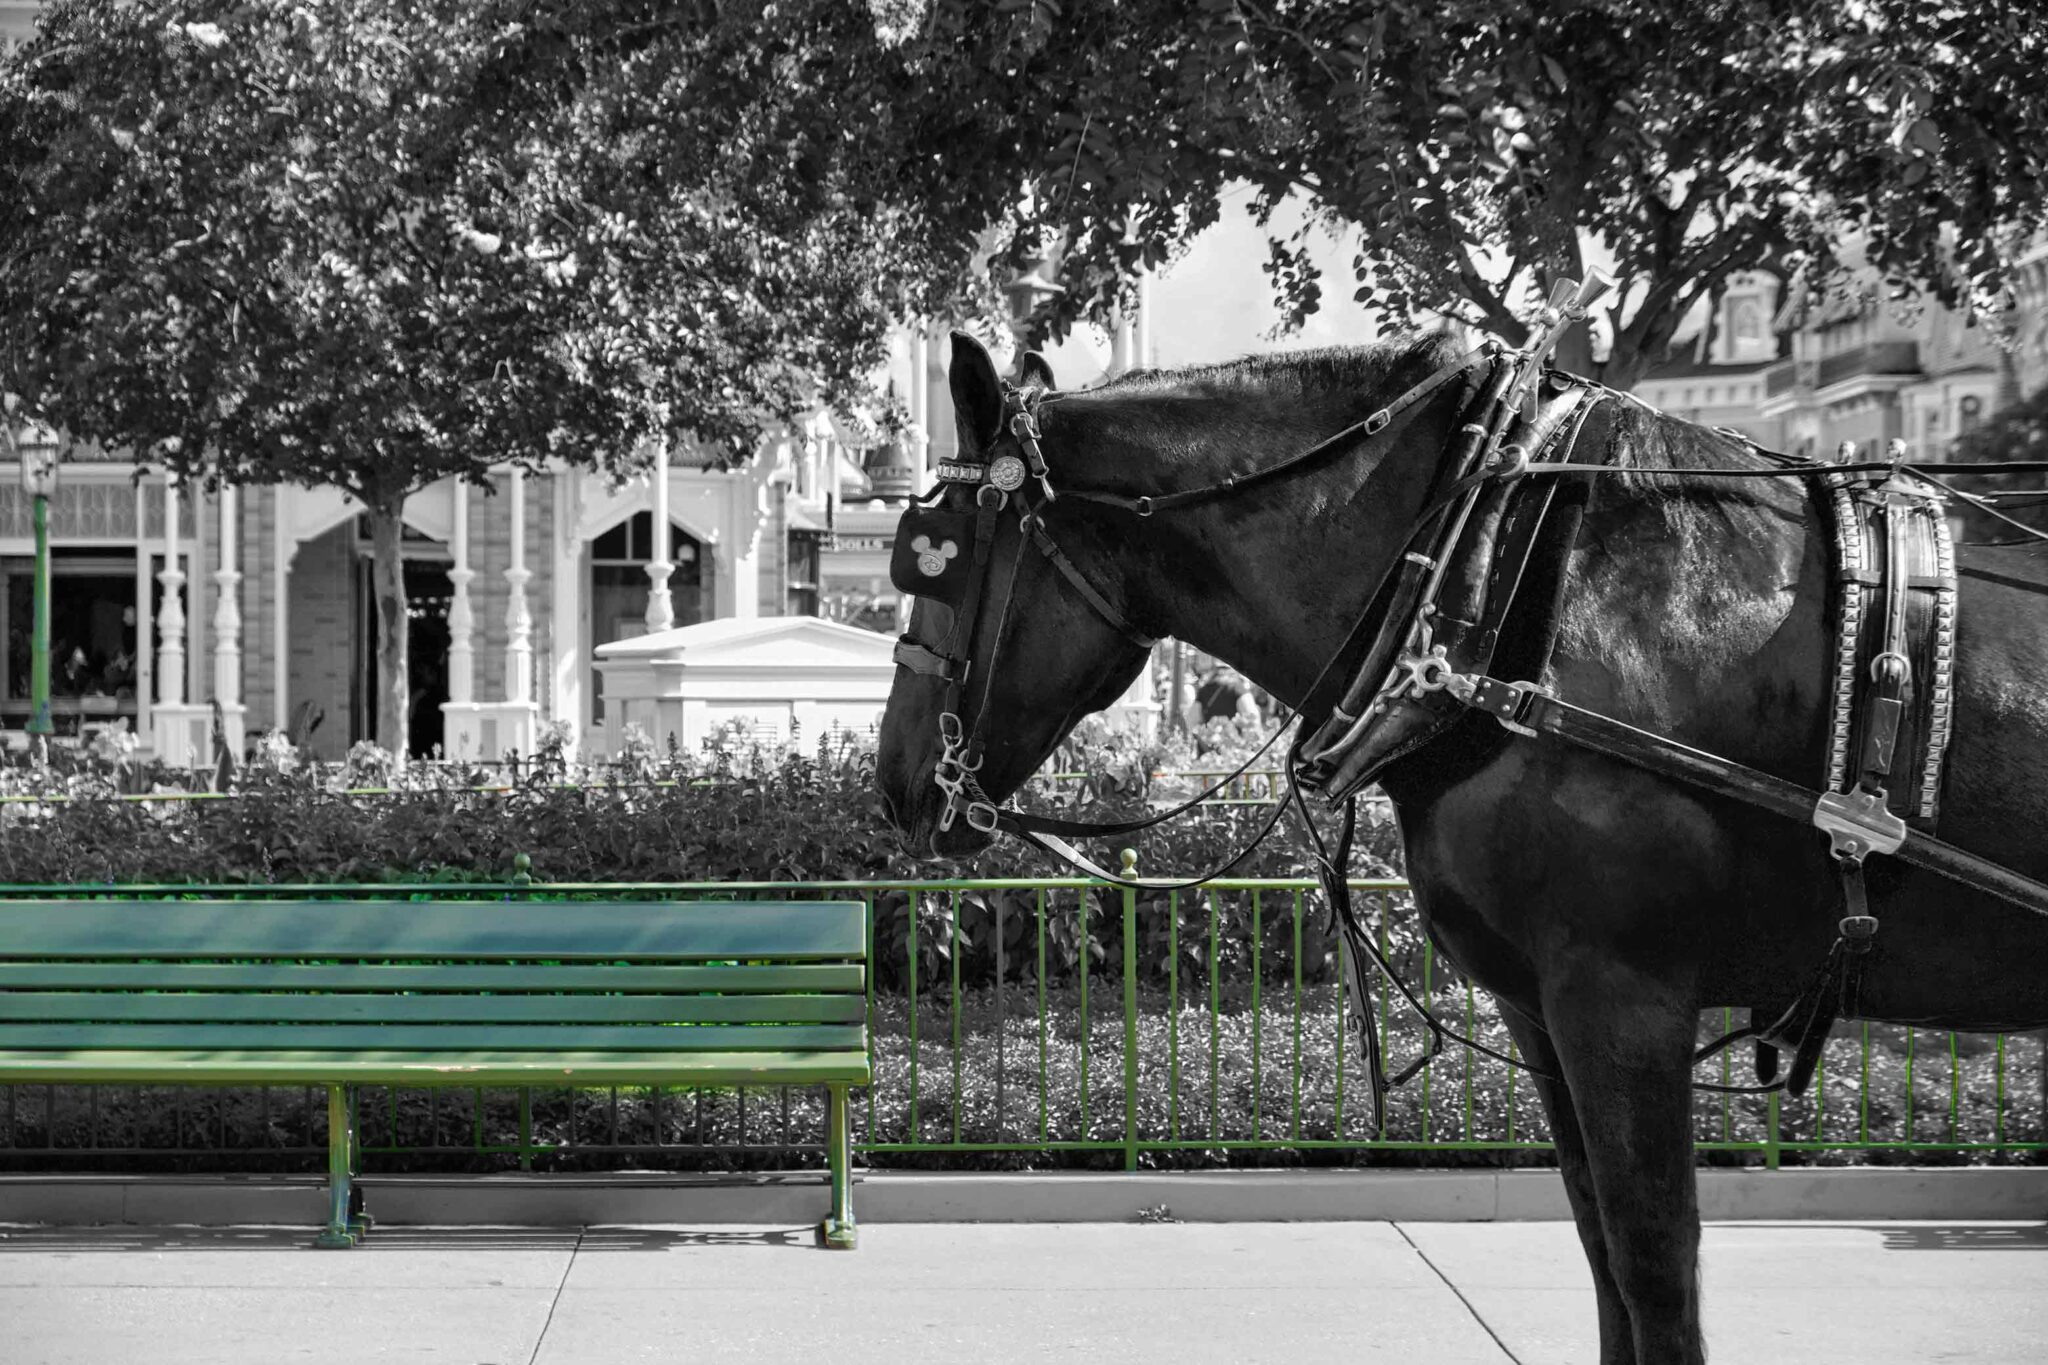 Disneyland Horse black and white except disney green